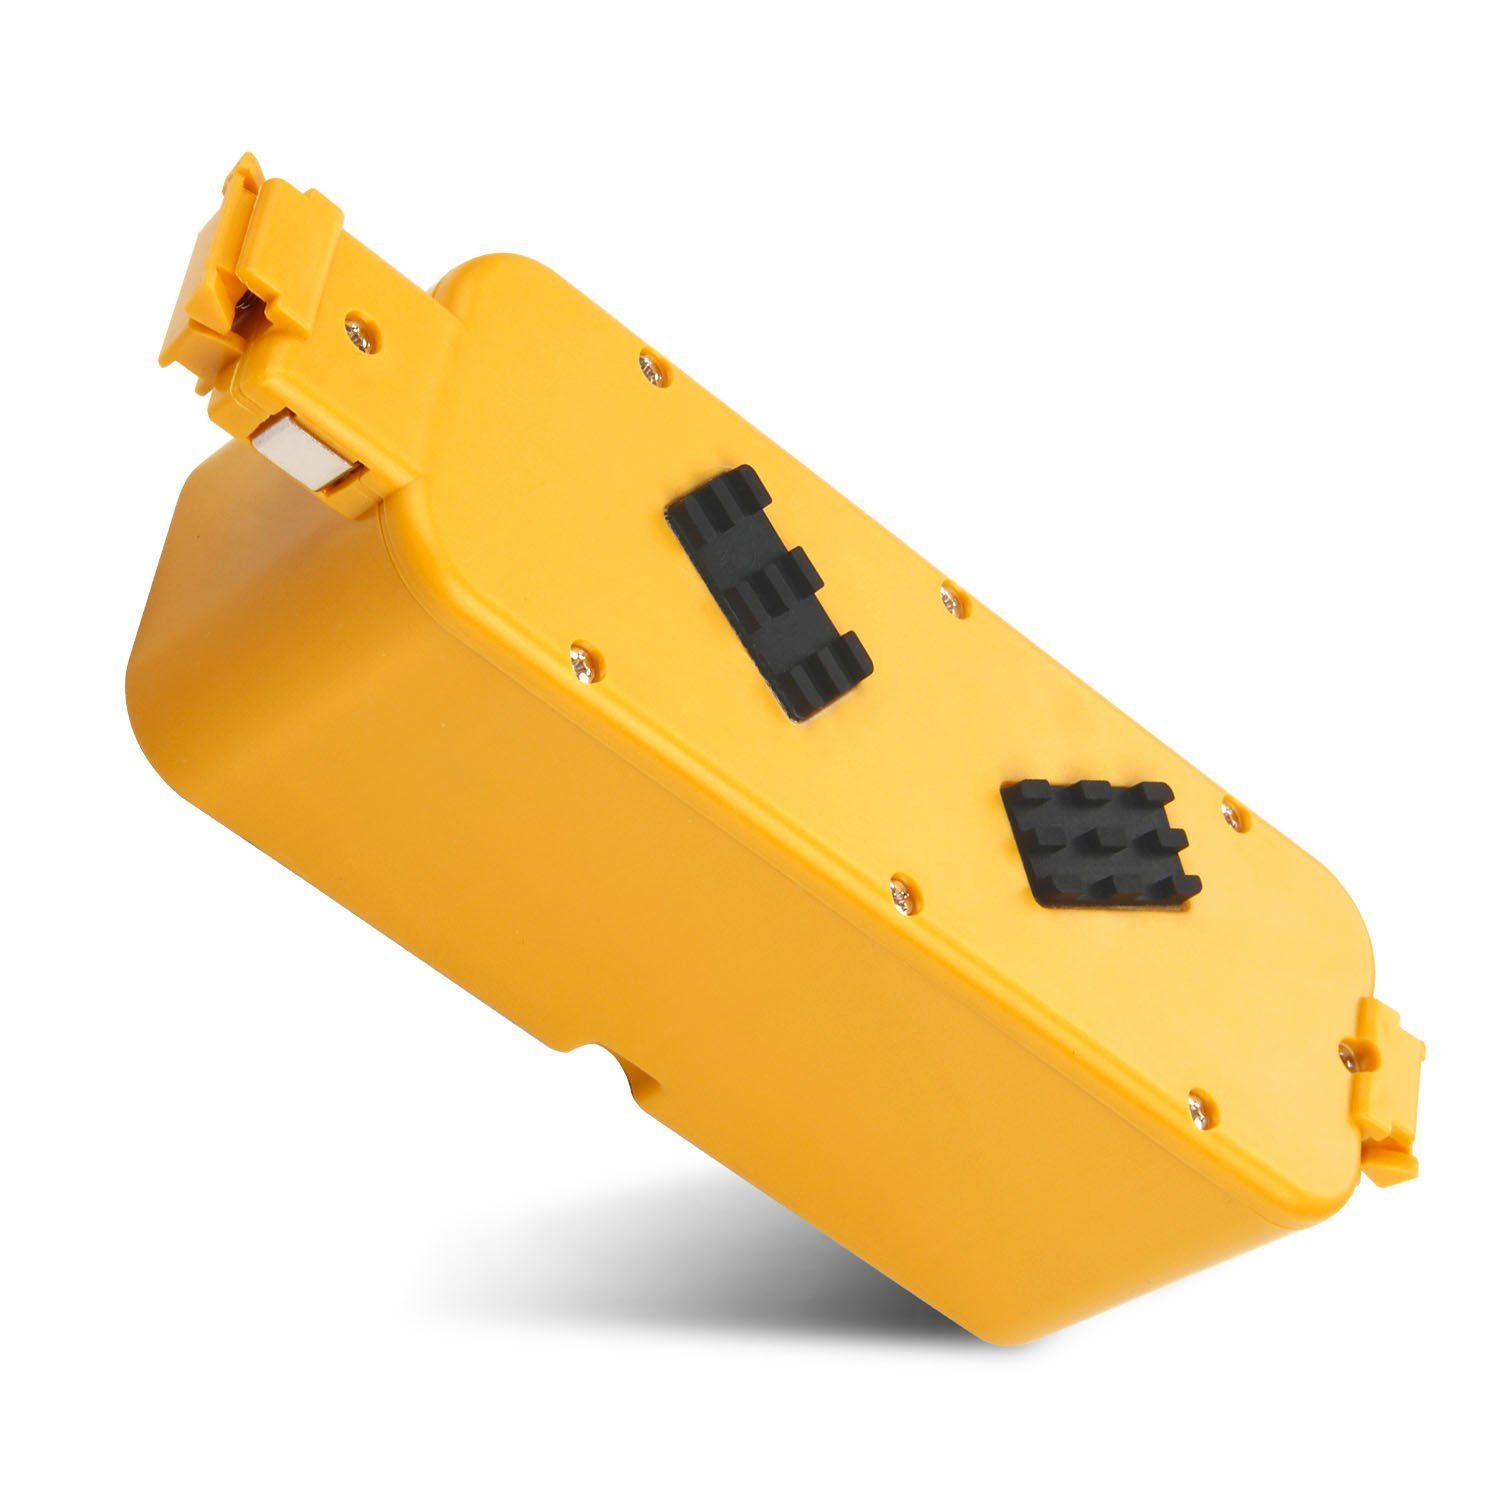 Upgraded 14.4V Ni-MH Replacement Battery for iRobot Roomba 400 Series Roomba 400 405 410 415 416 418 4000 4100 4105 4110 4130 4150 4170 4188 4210 4220 4225 4230 4232 4260 4296